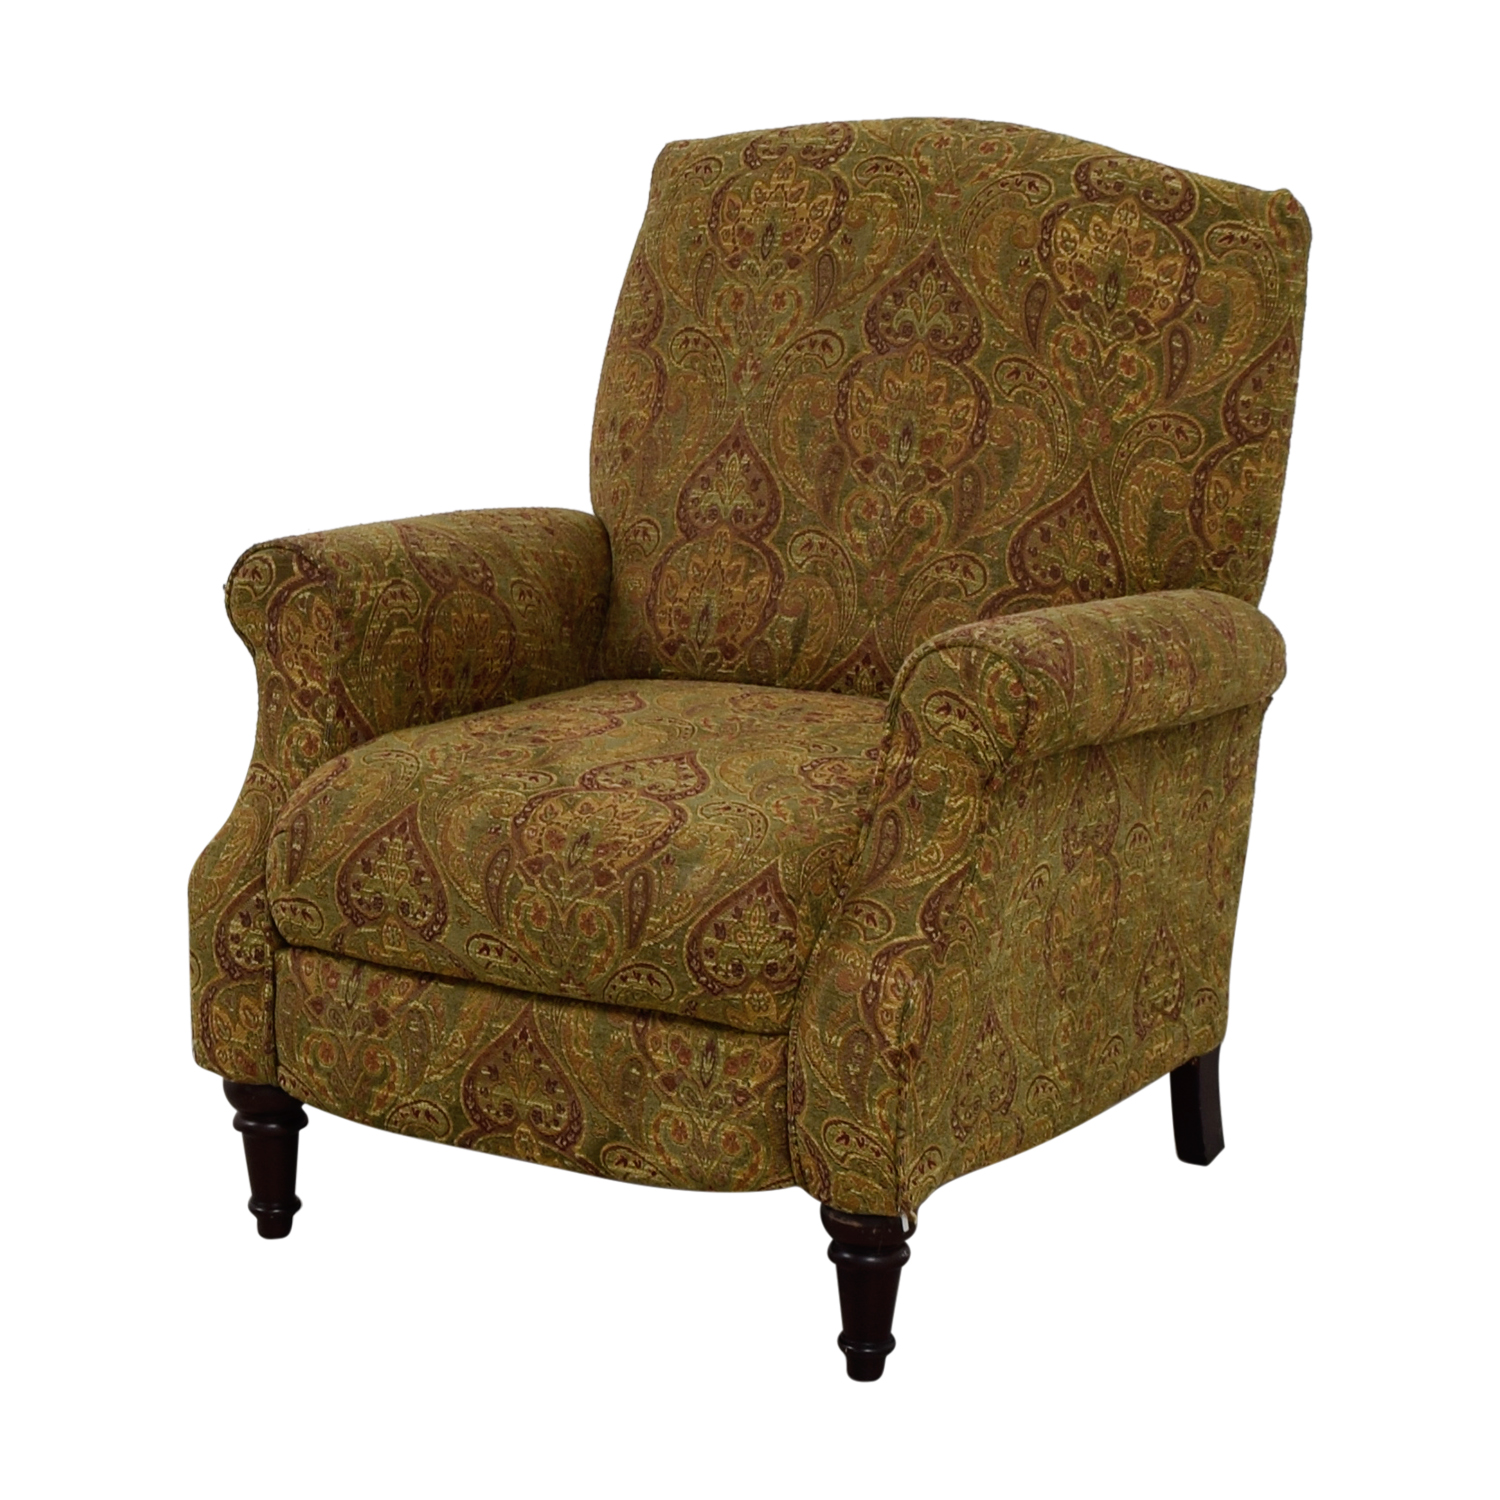 Paisley Chair 81 Off Green And Burgundy Paisley Recliner Chairs